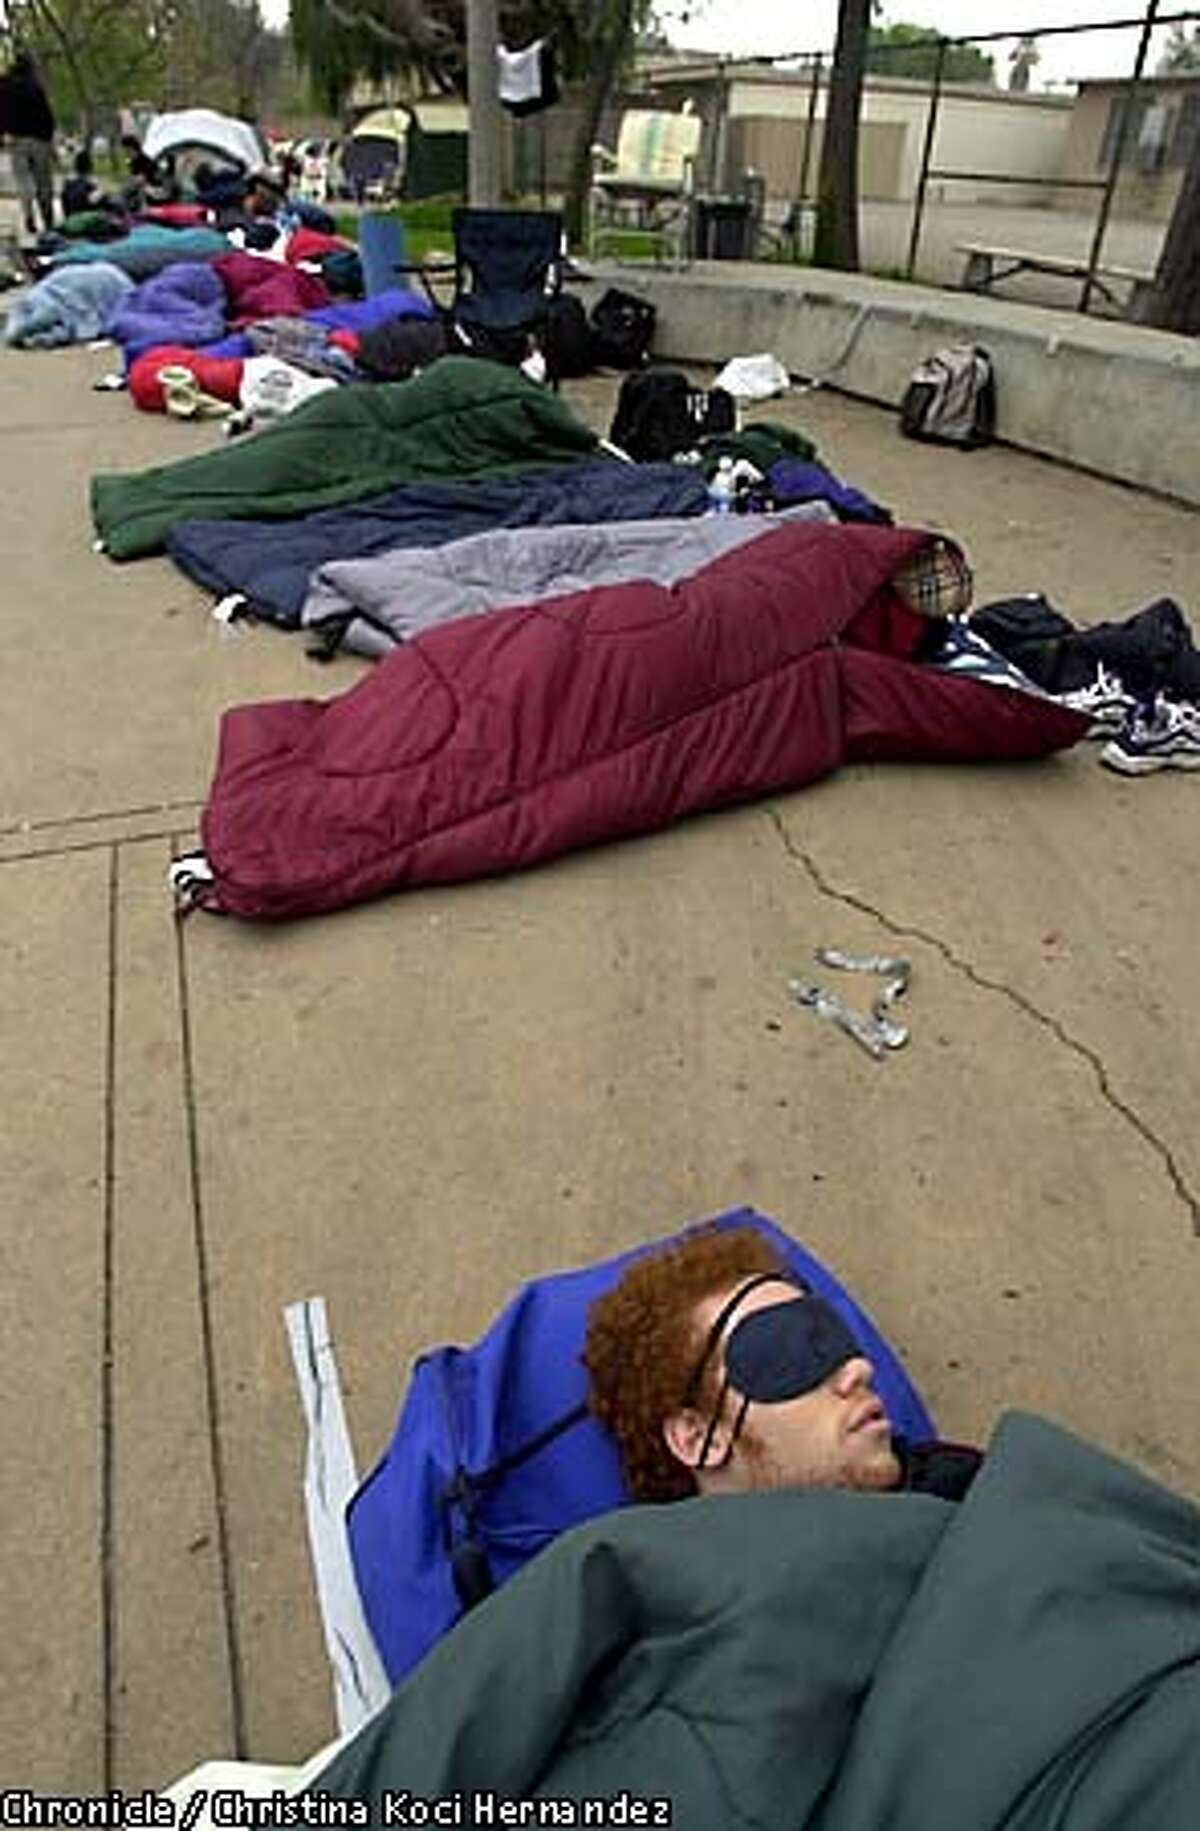 Jeremy Benjamin of Los Angeles, foreground, got some sleep along with other fans on University Avenue in Los Angeles early yesterday morning. Chronicle photo by Christina Koci Hernandez